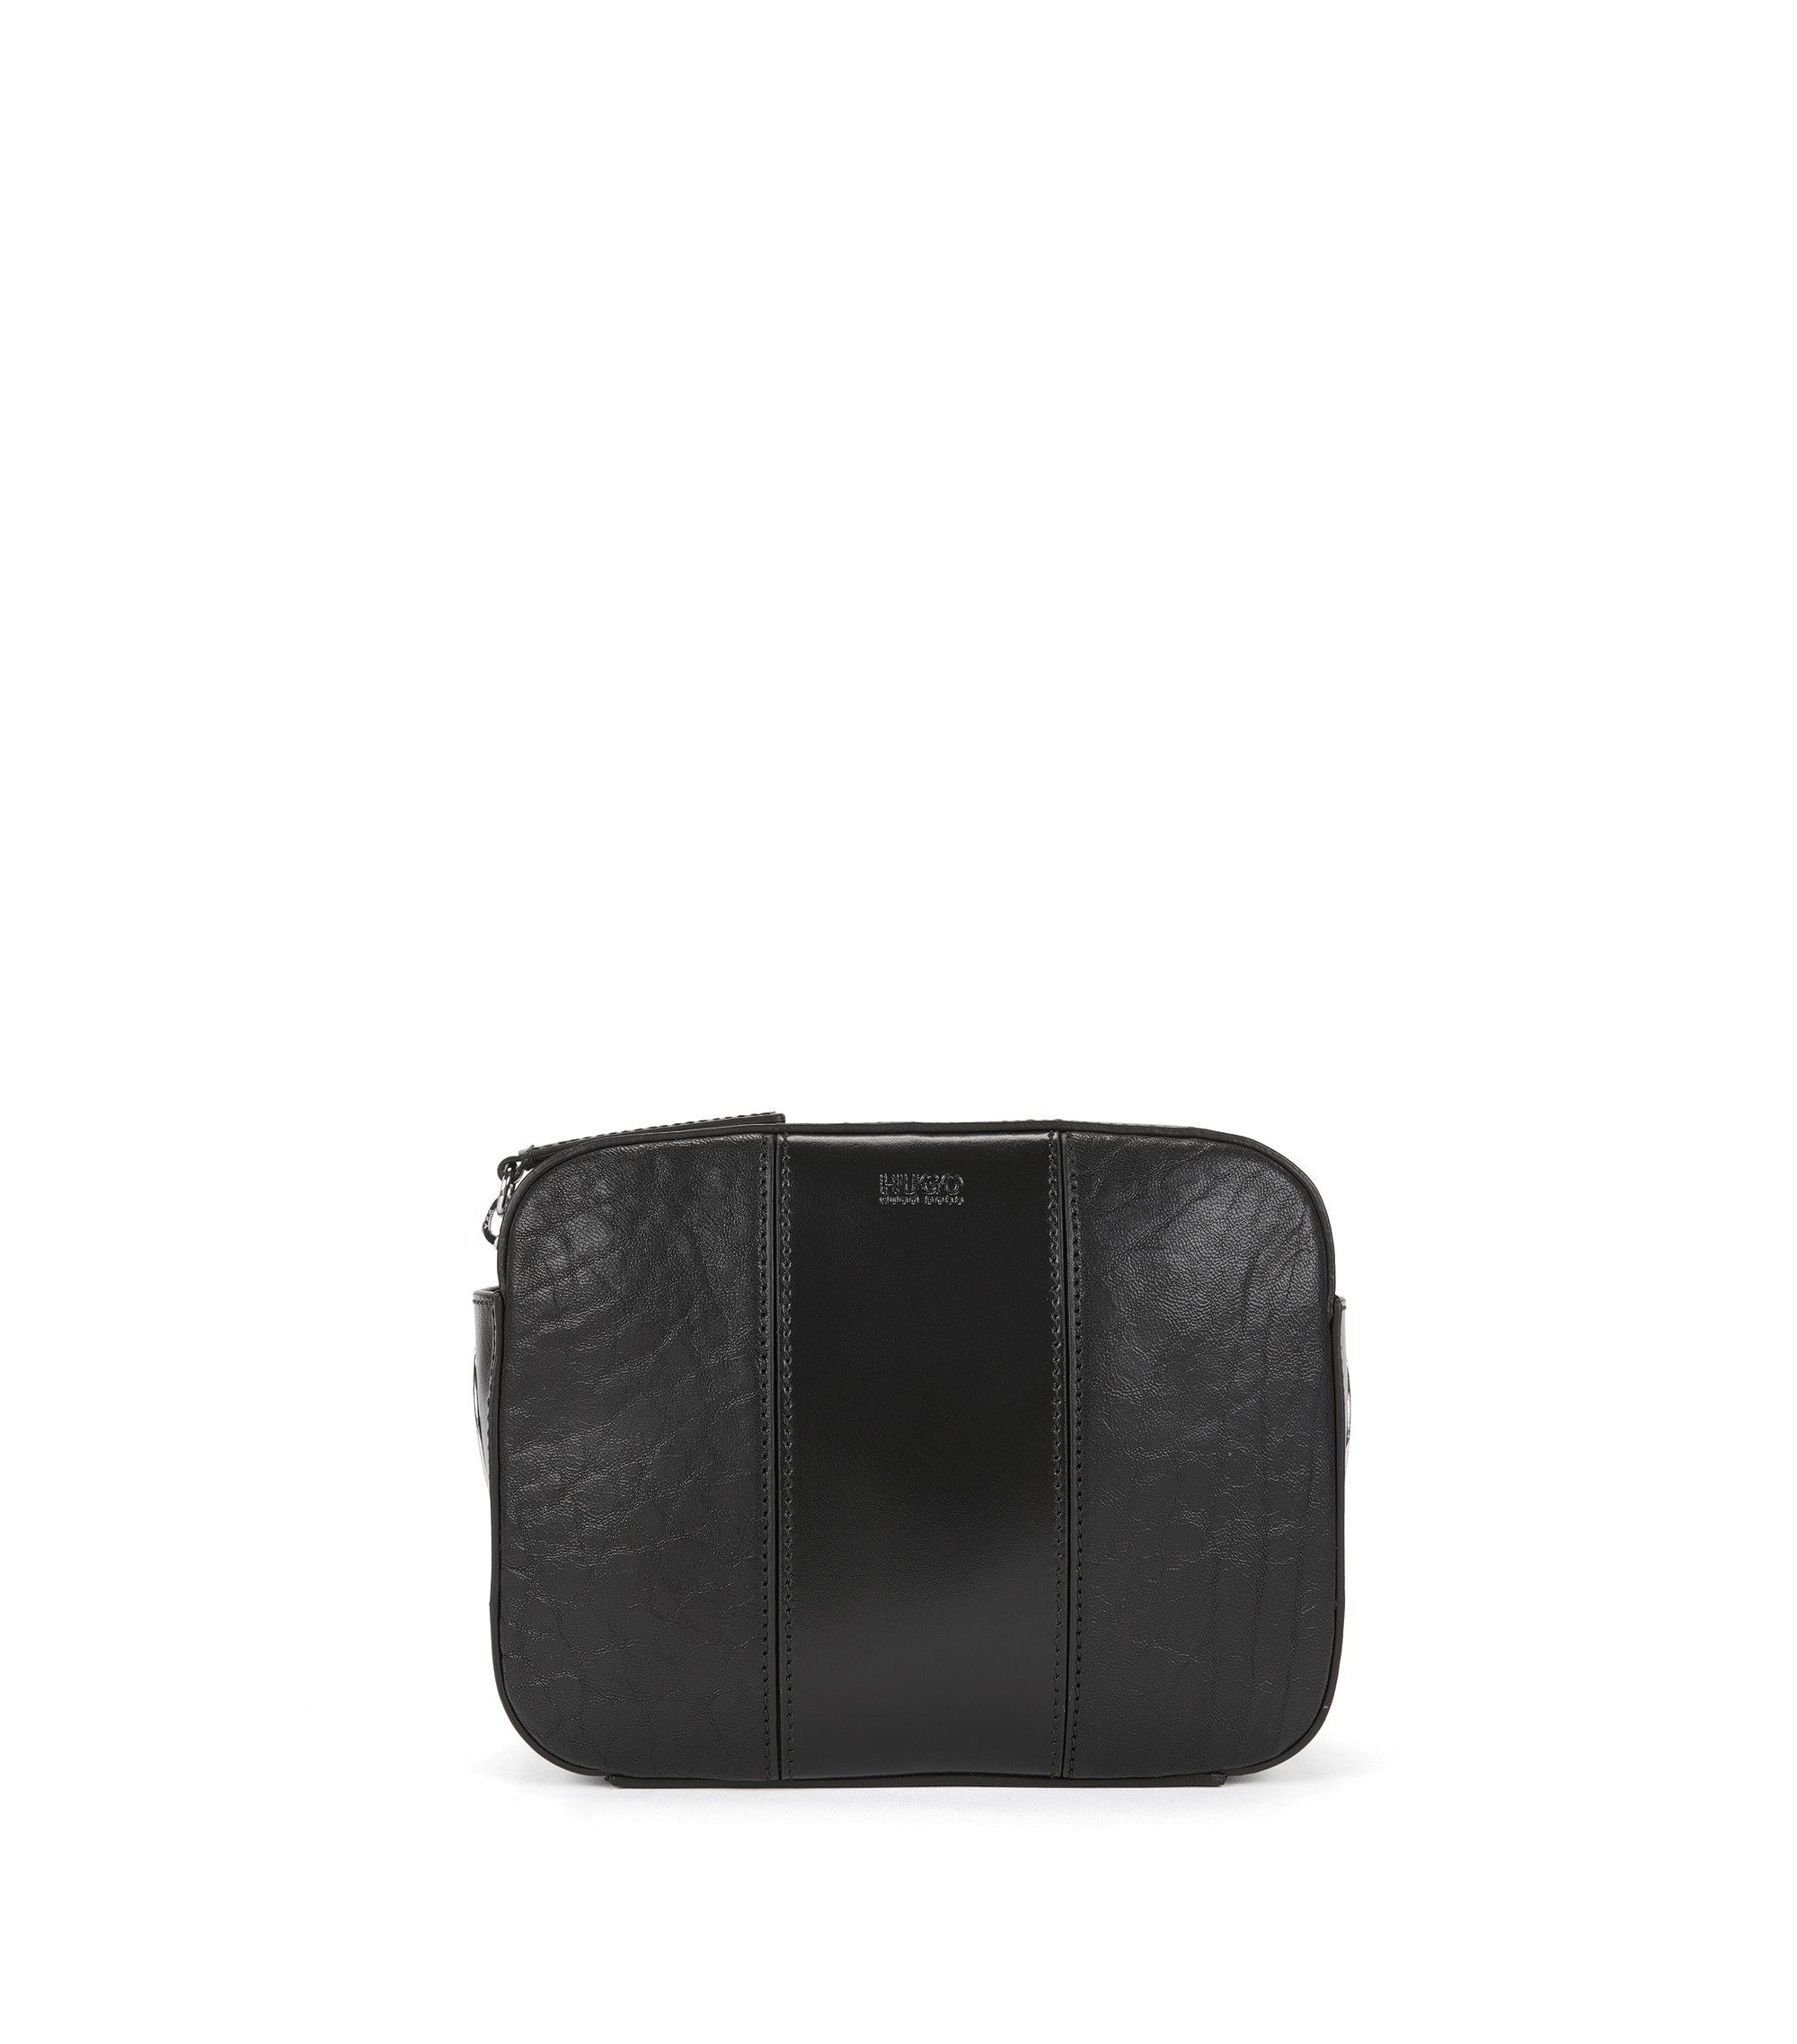 Crossbody bag in Italian leather, Black